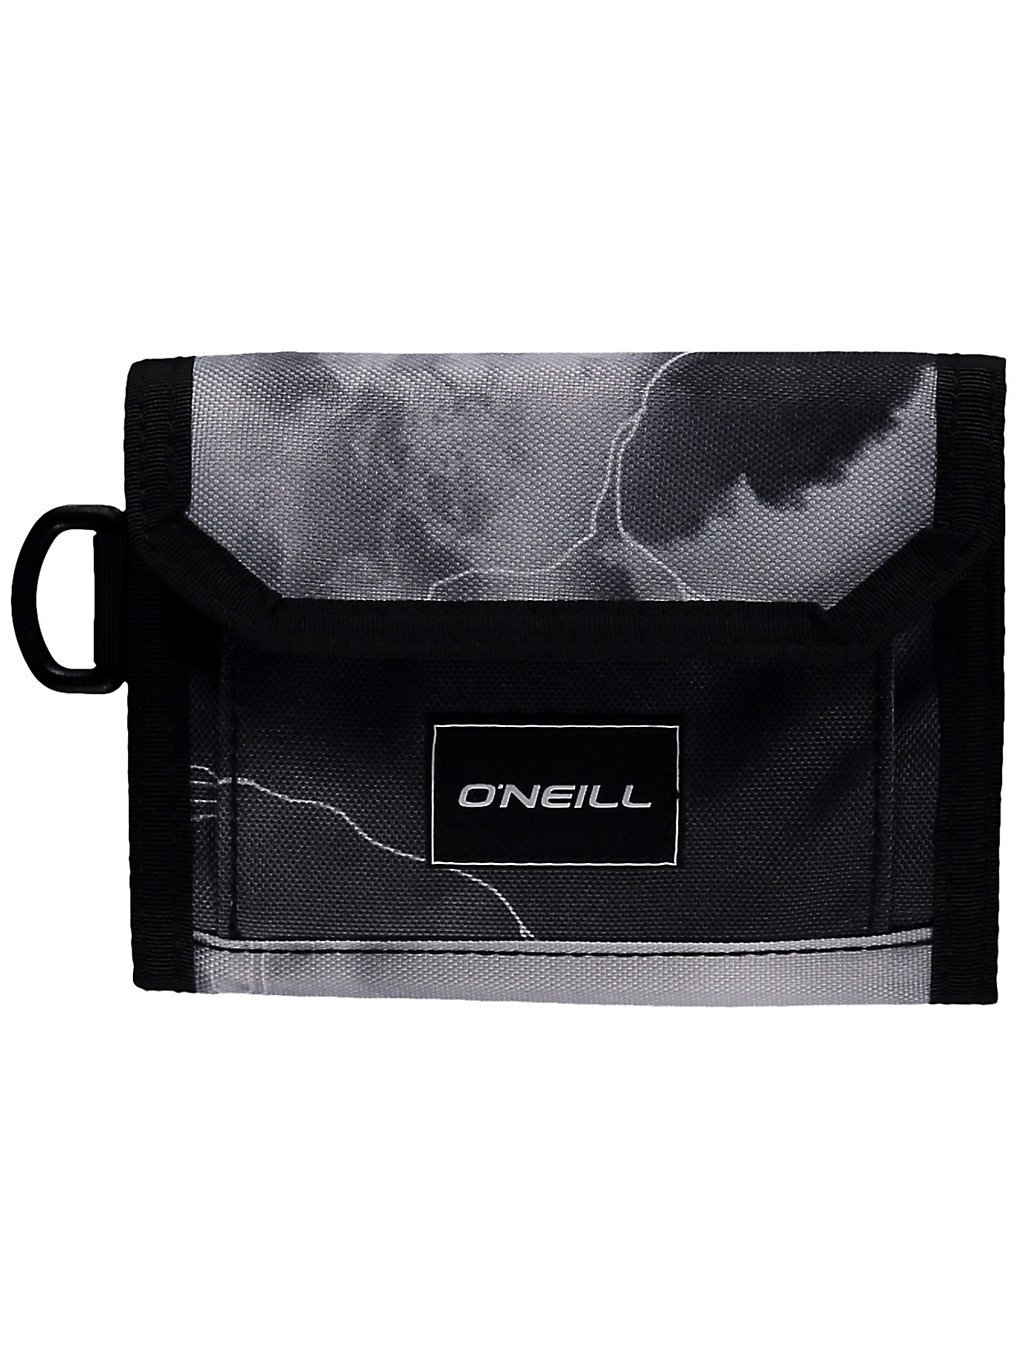 Image of O'Neill Pocketbook Wallet nero